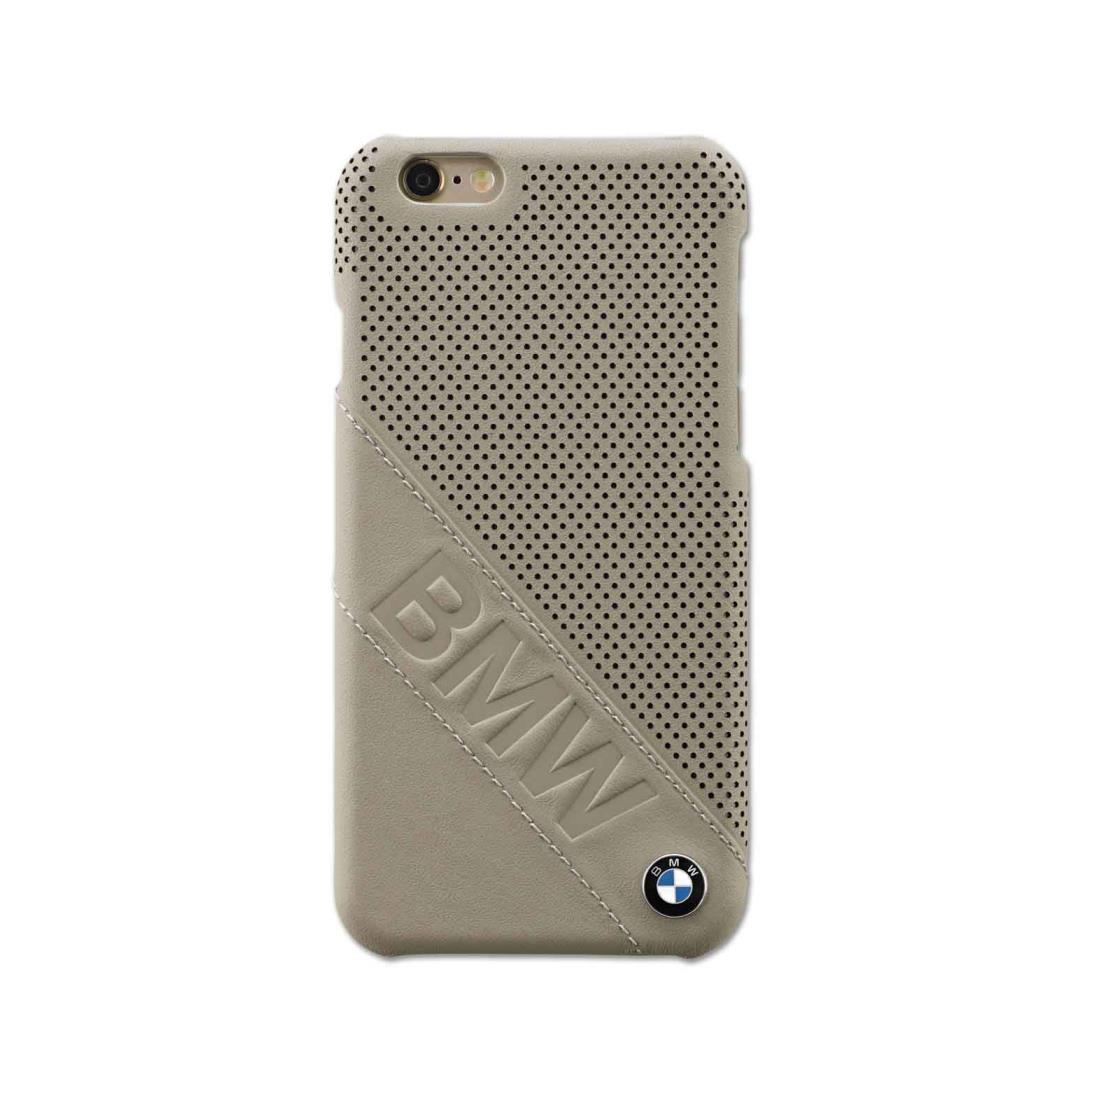 bmw case Results 1 - 108 of 2470  high quality bmw inspired iphone cases & covers for x, 8/8 plus, 7/7 plus, se,  6s/6s plus, 6/6 plus by independent artists and designers.